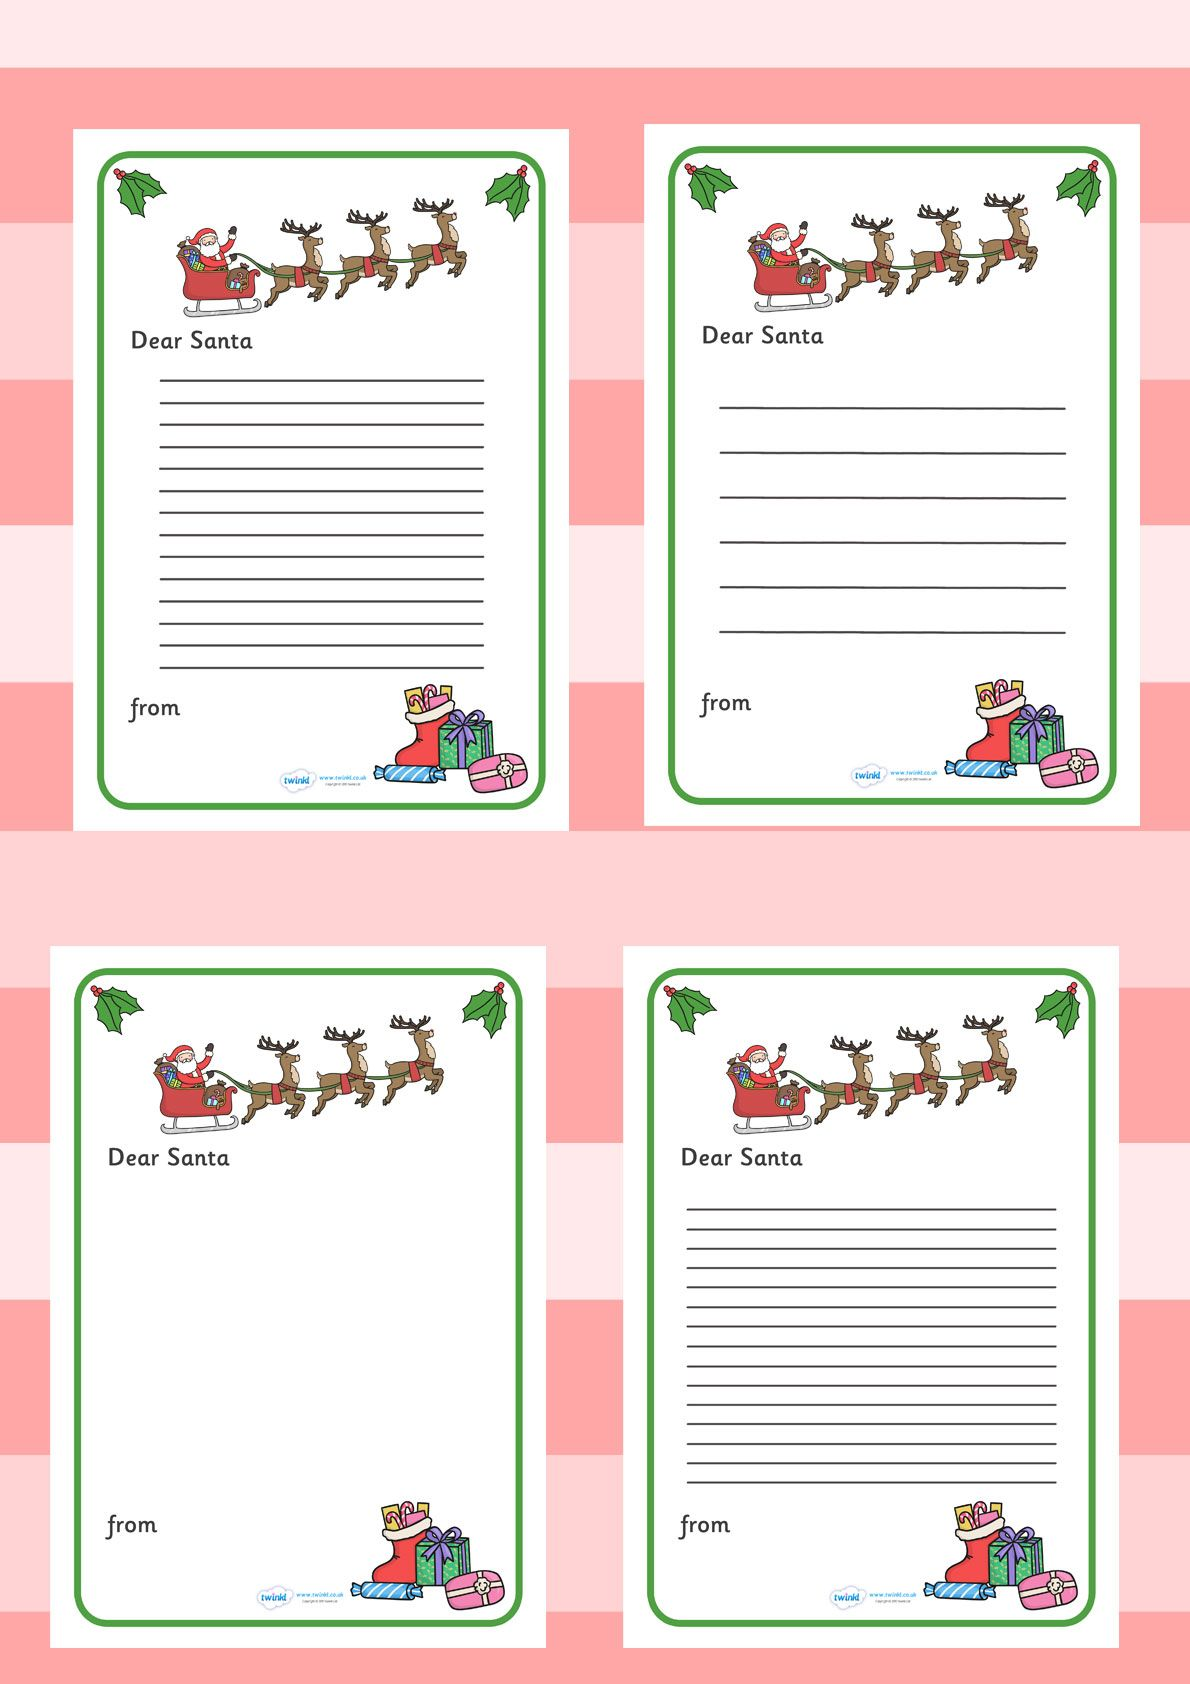 Christmas colouring in sheets twinkl - Twinkl Resources Letter To Santa Printable Resources For Primary Eyfs